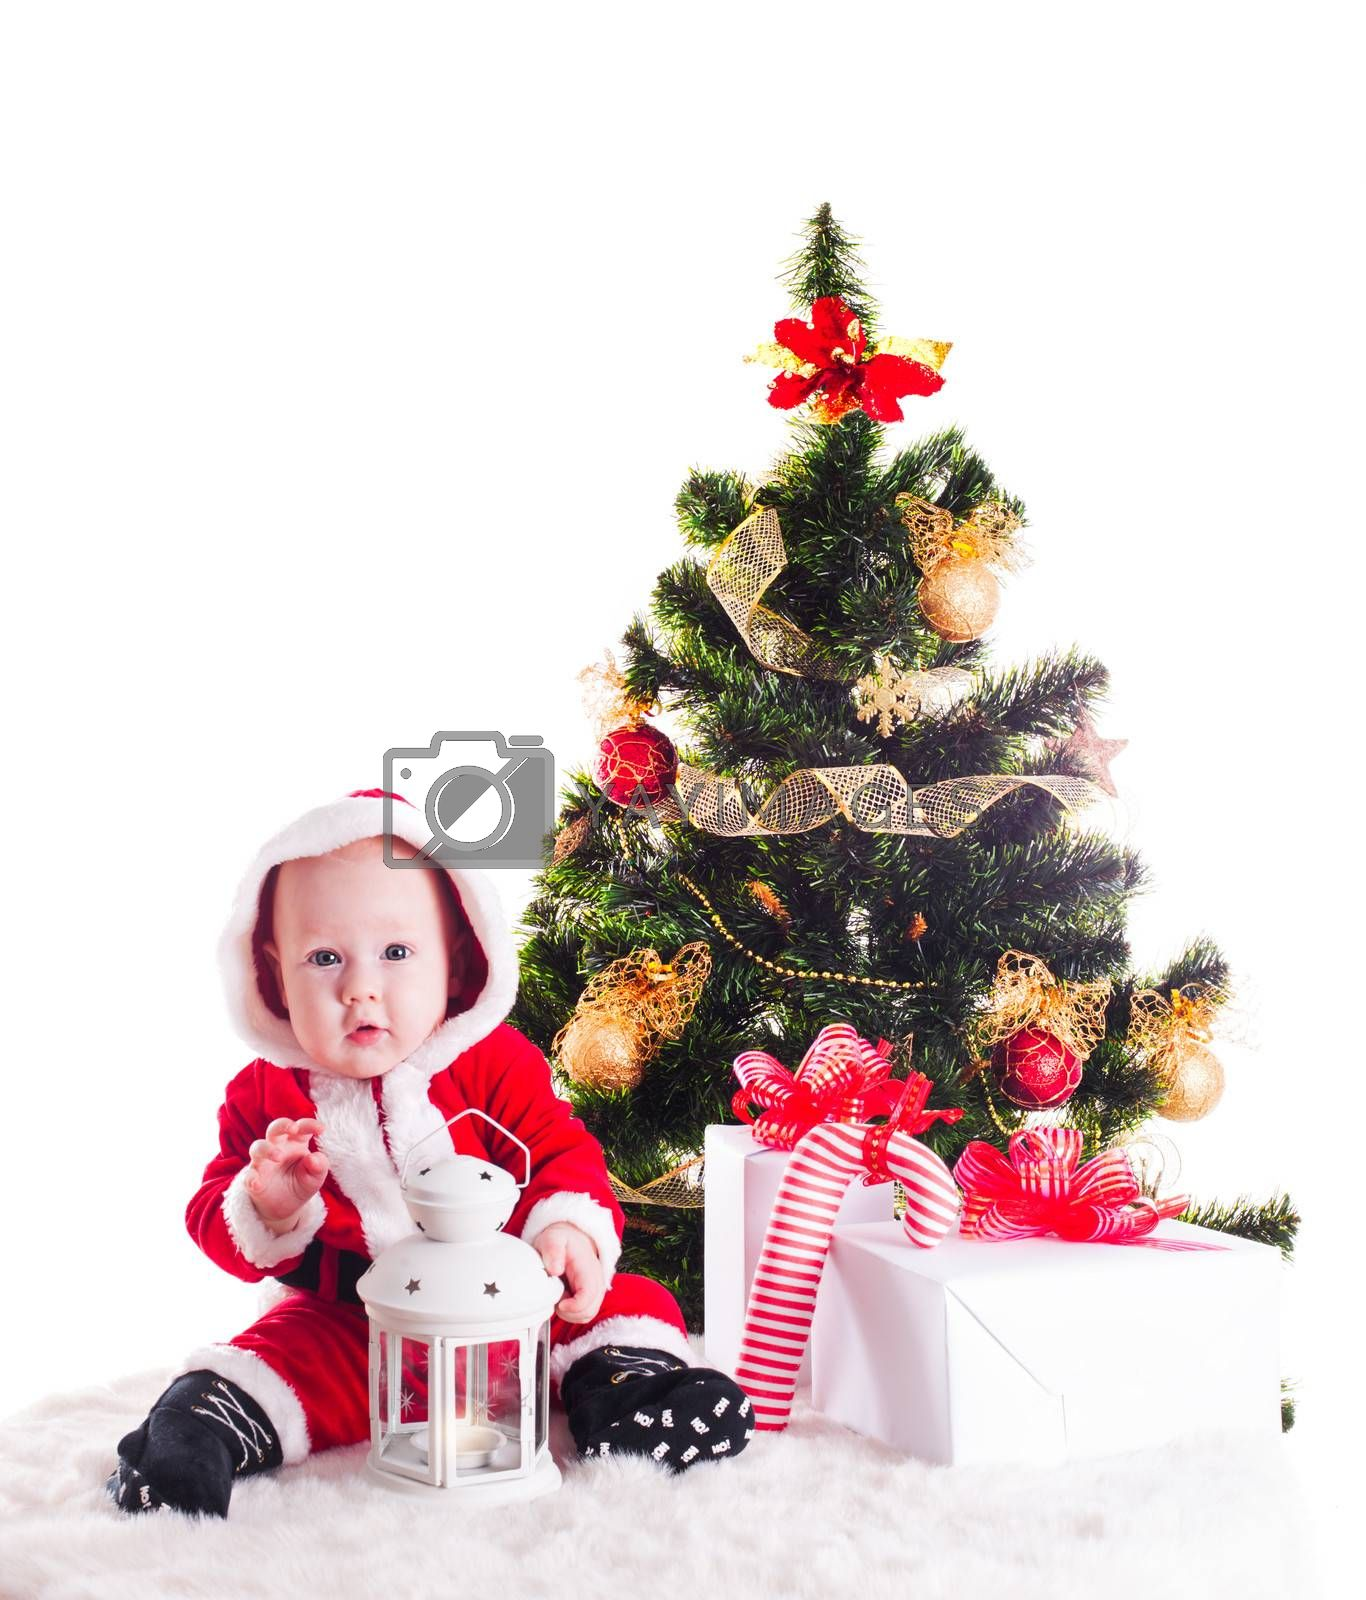 Christmas baby under the New Years tree with gifts